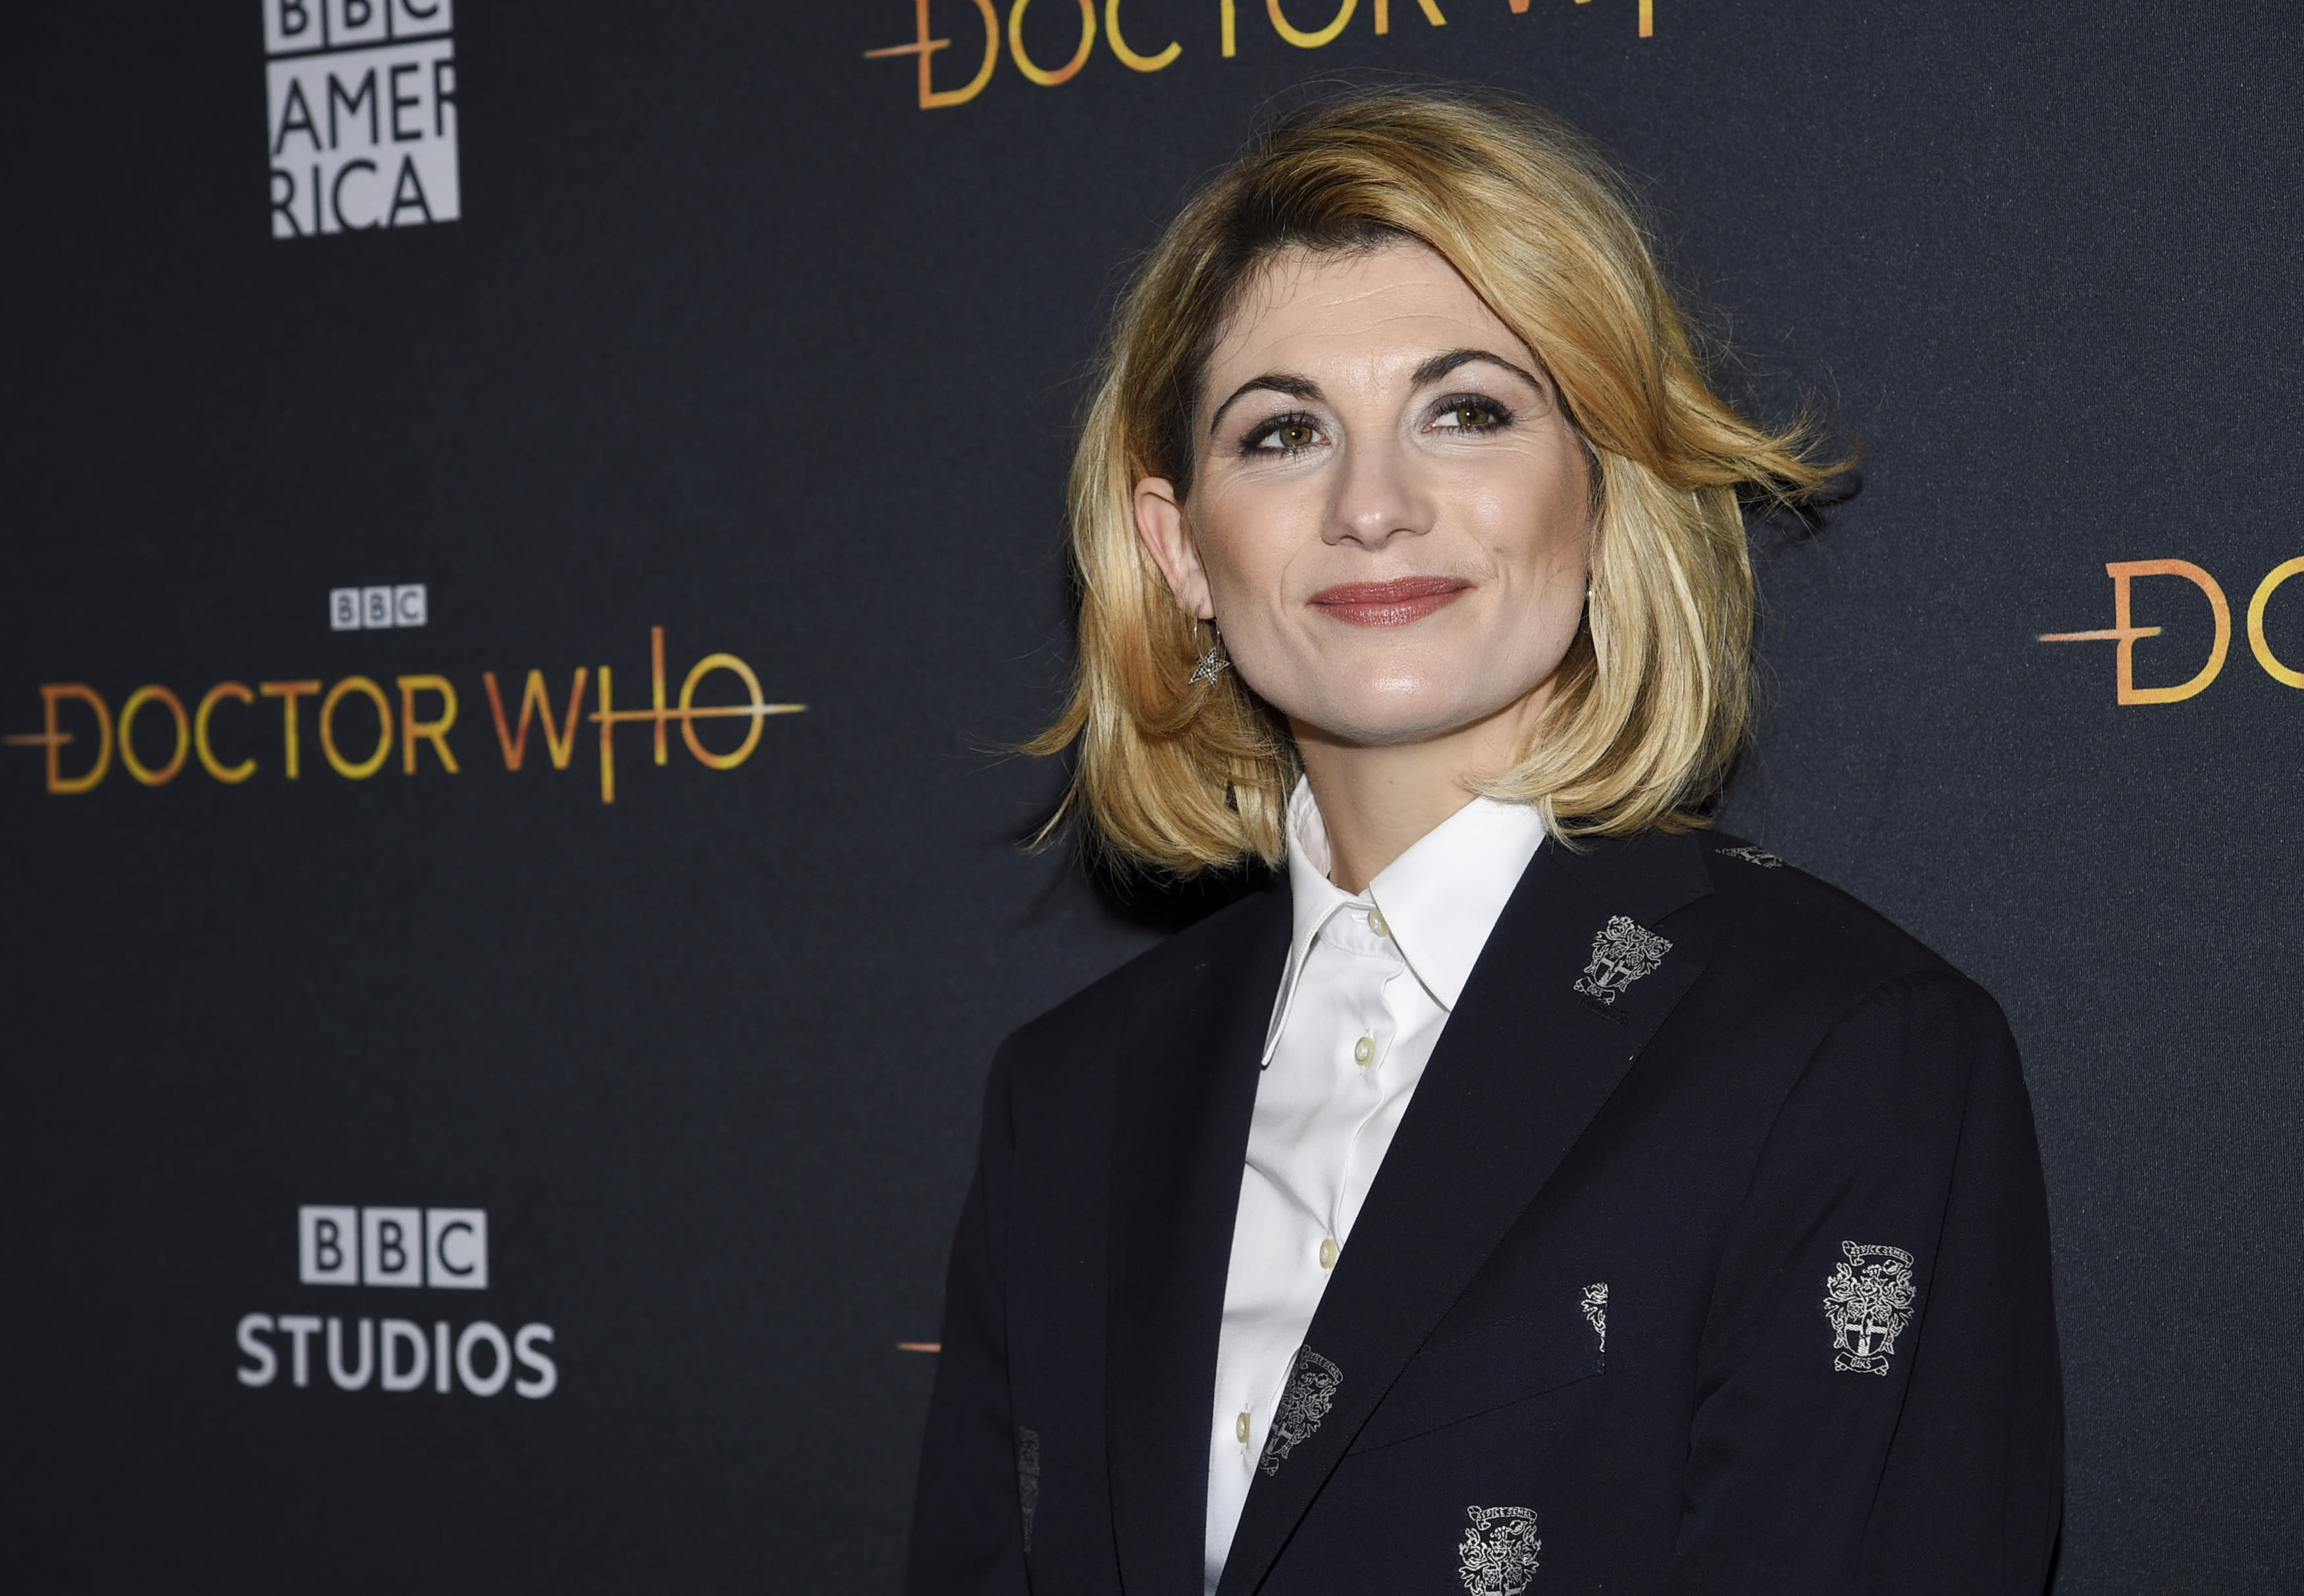 Jodie Whittaker accidentally confirms she'll be back for the next series of 'Doctor Who'